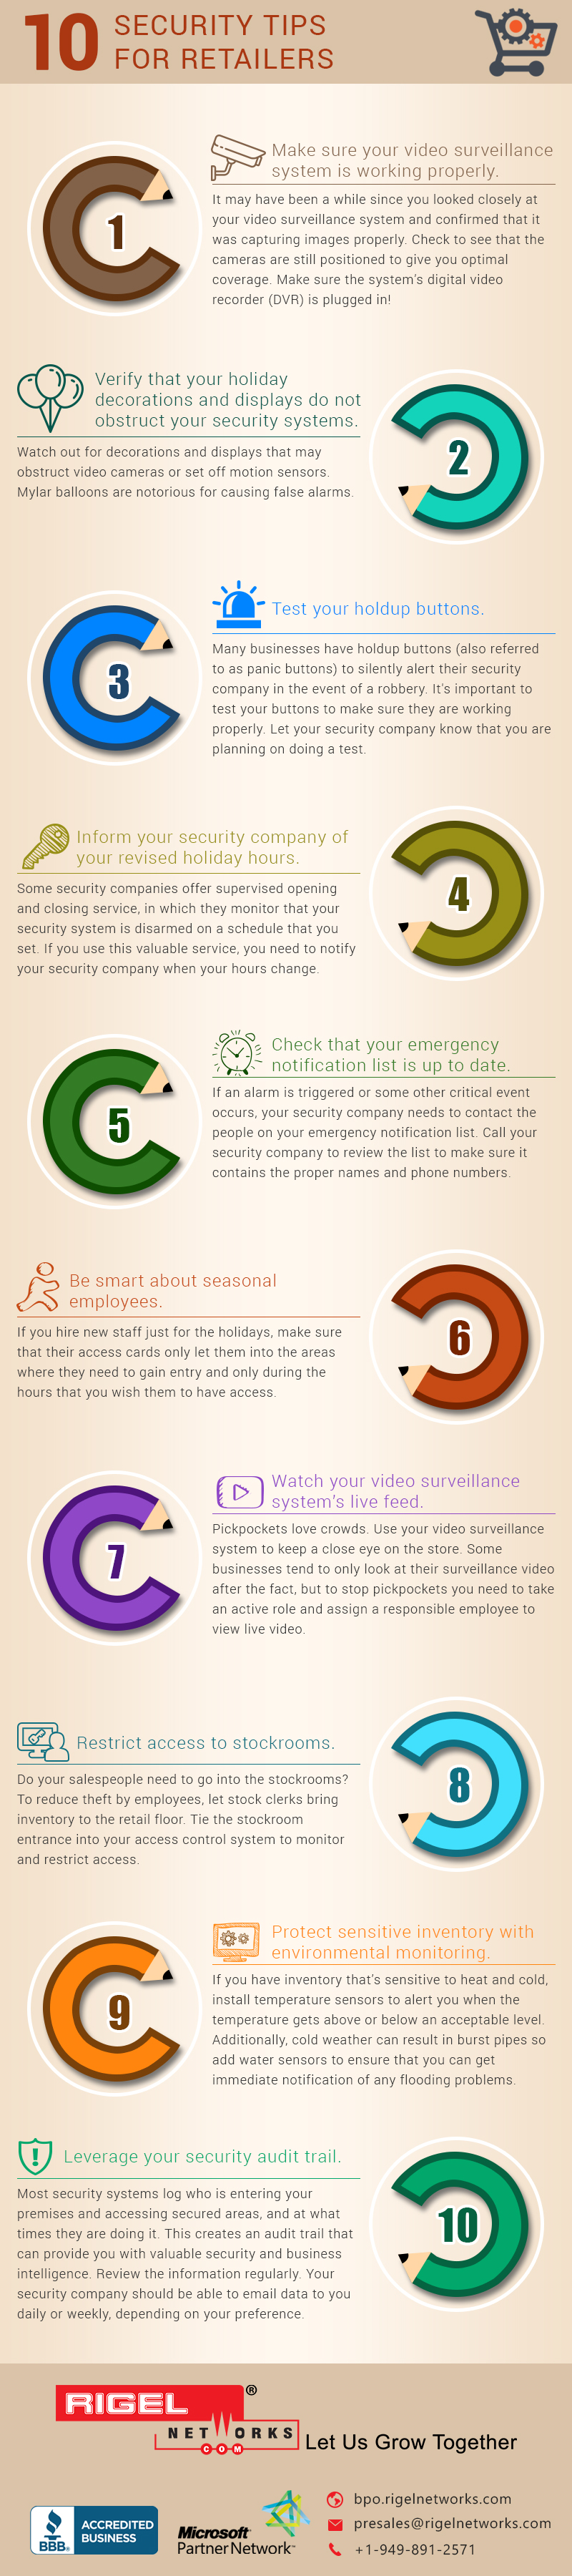 10-it-security-tips-for-retailers